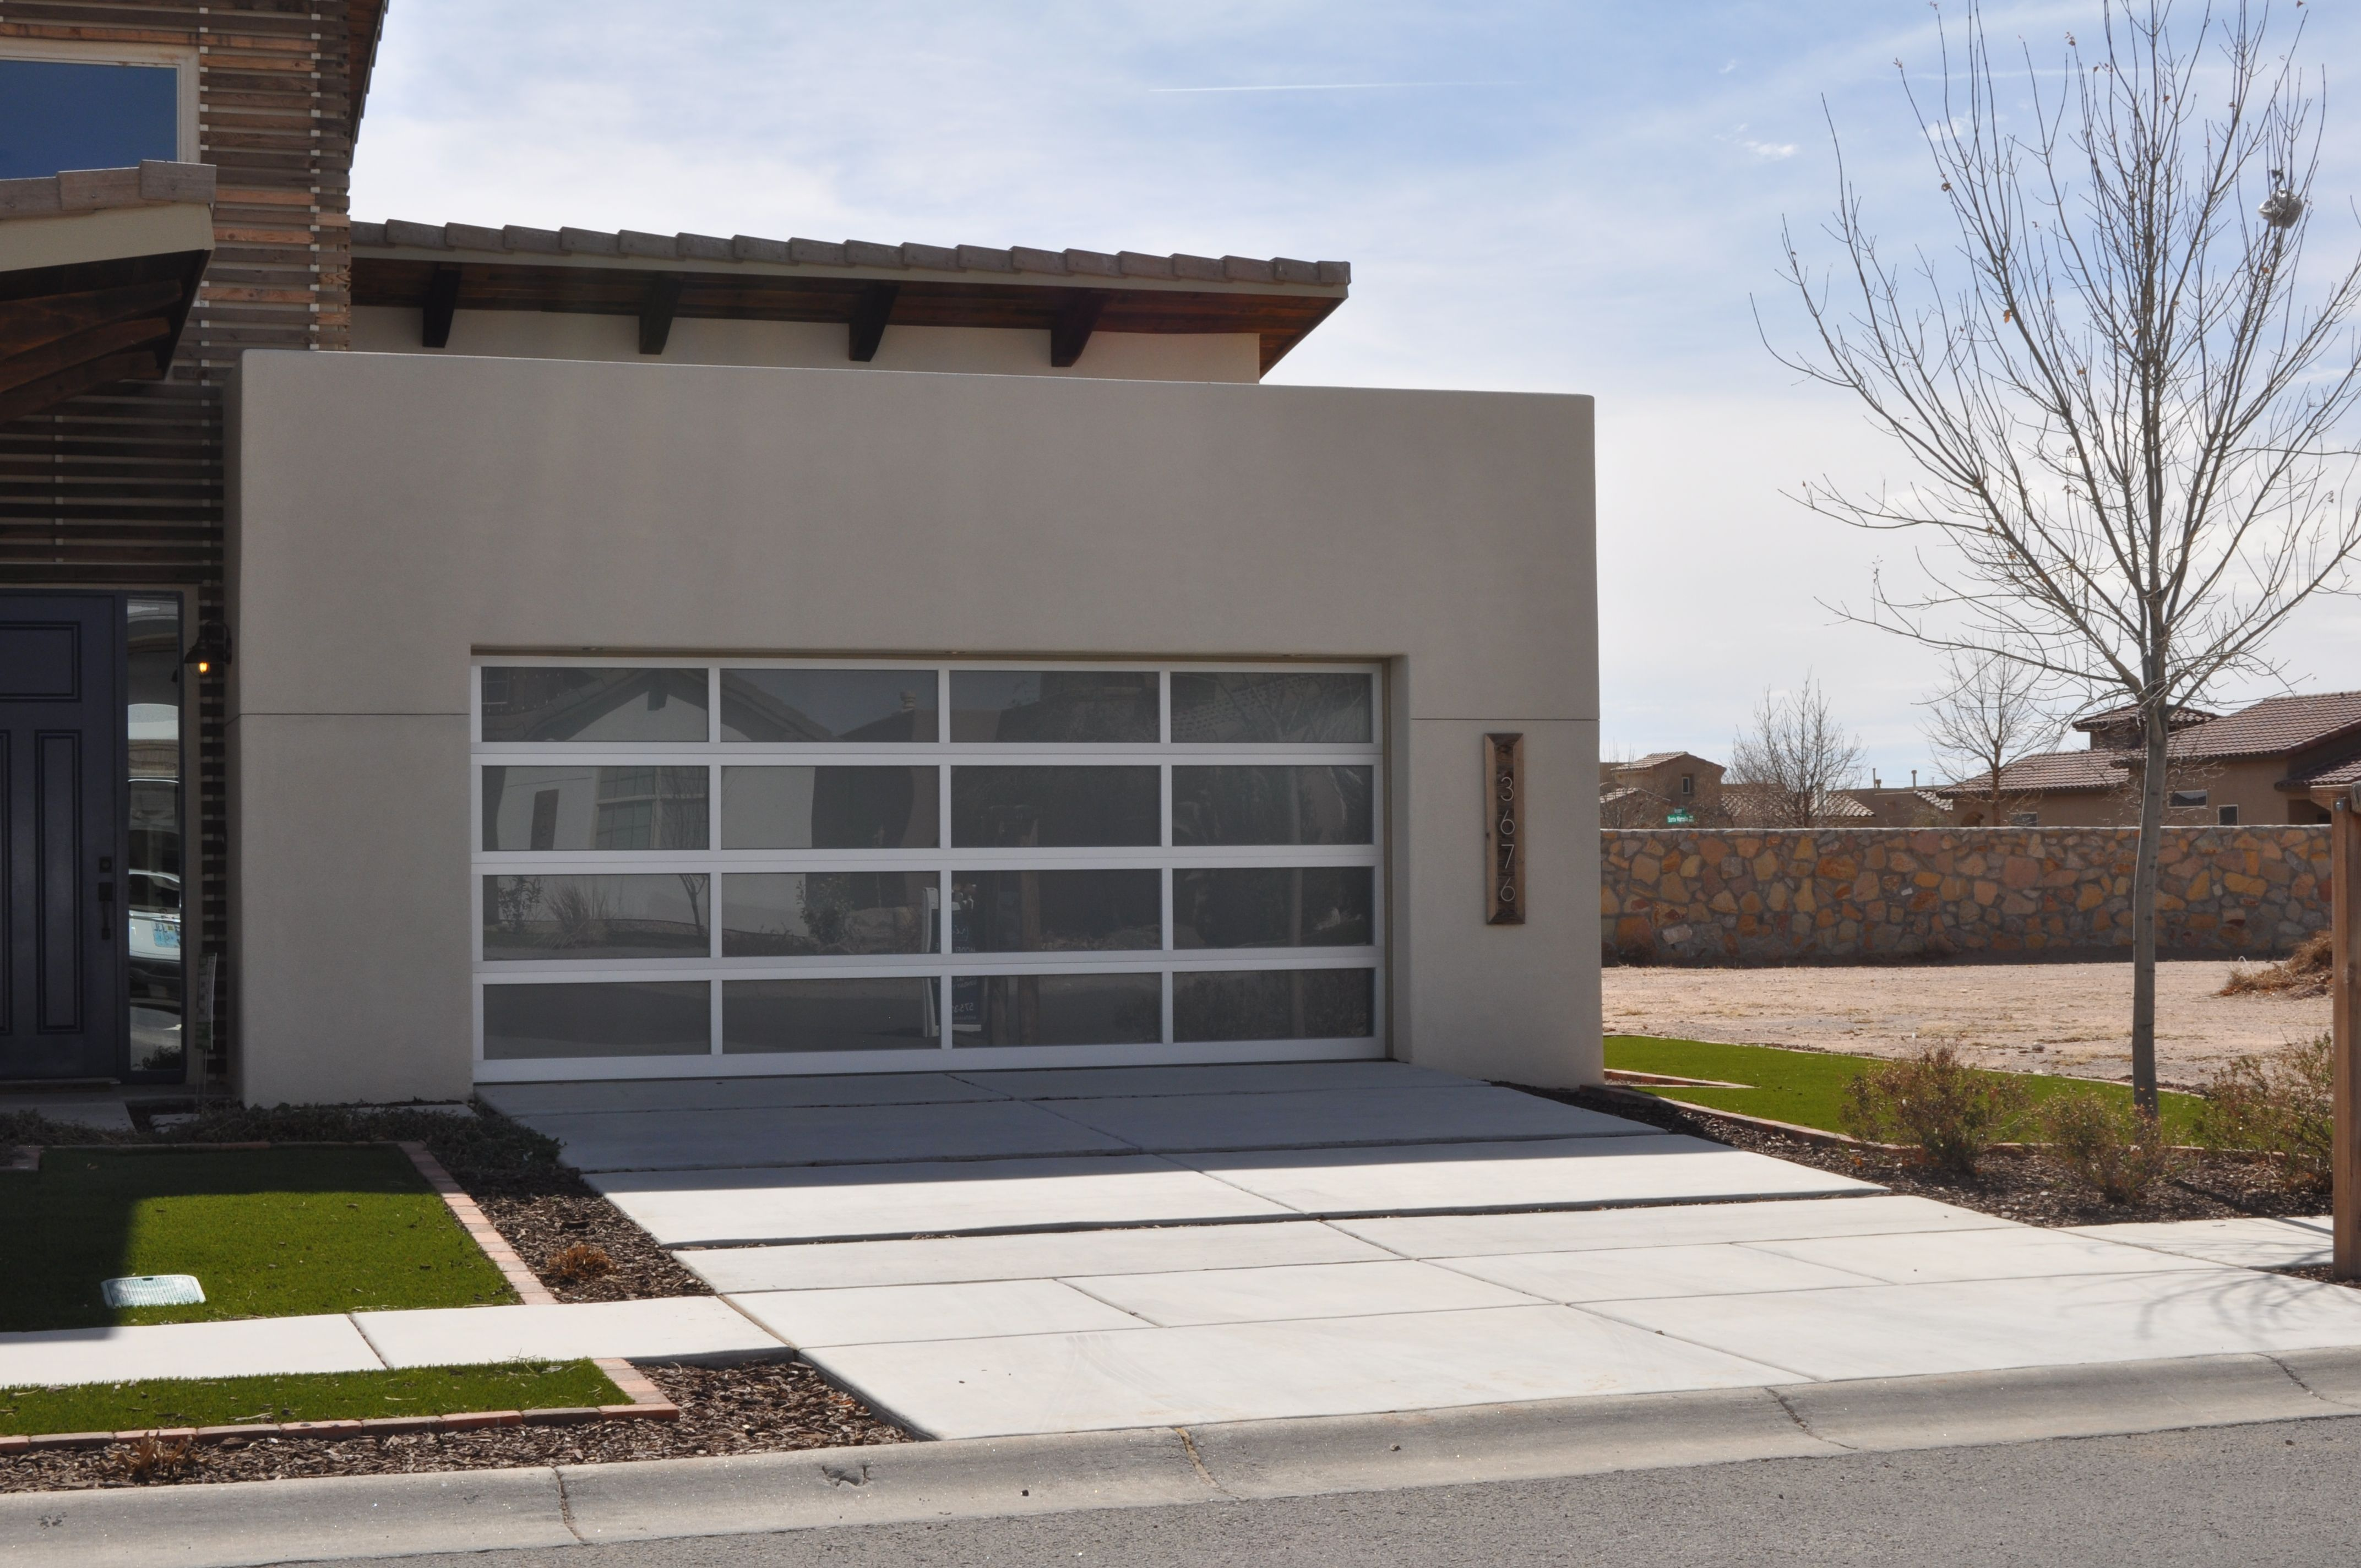 Garage door inspo full view garage doors with frosted glass for privacy without losing the modern home look